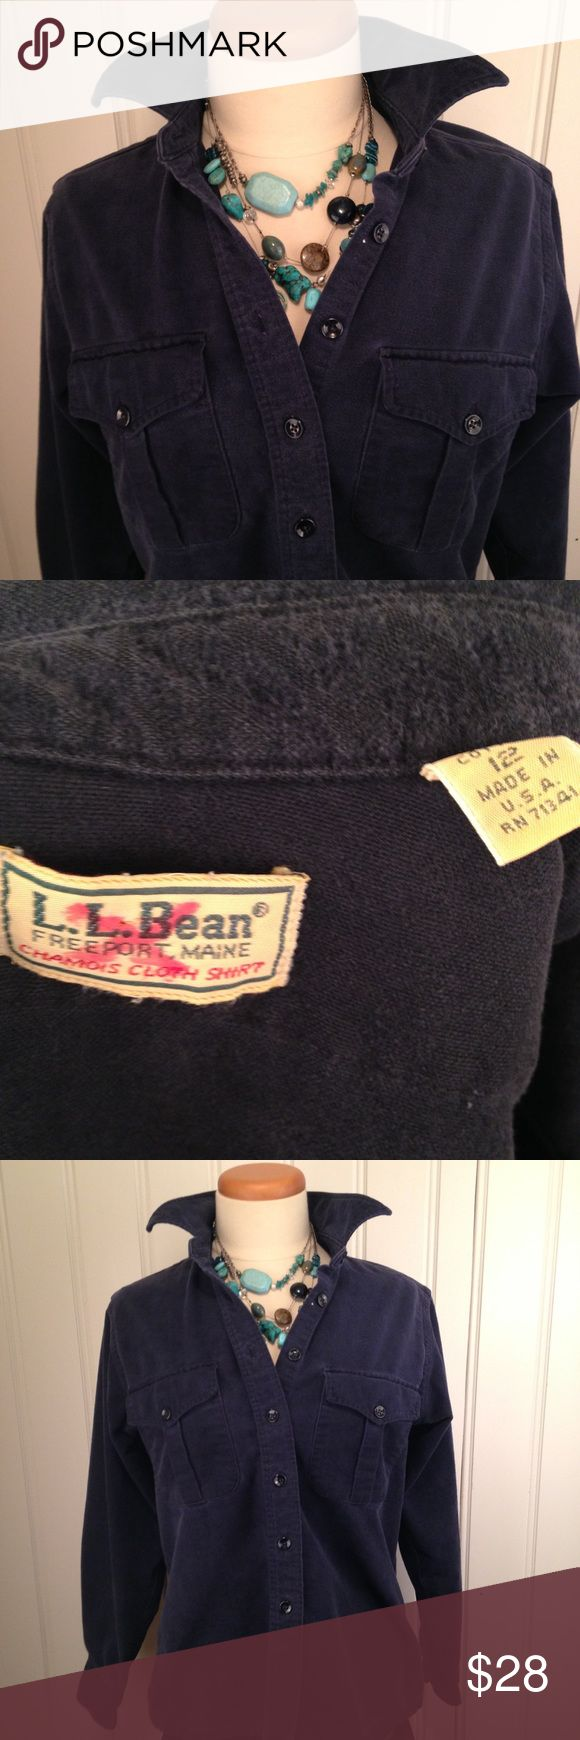 L.L. Bean women's chamois shirt navy blue size sm Perfectly vintage L.L. Bean women's chamois shirt Size small 100% cotton Wonderfully soft and broken in.  If you are familiar with Bean's chamois shorts, this is how you want them.  They get softer with age and take on an almost velveteen sheen.   Super warm thick flannel, a timeless classic.   Good condition, some wear on the sleeves ( see photo) .  Chamois is worn but this improves the feel. L.L. Bean Tops Button Down Shirts